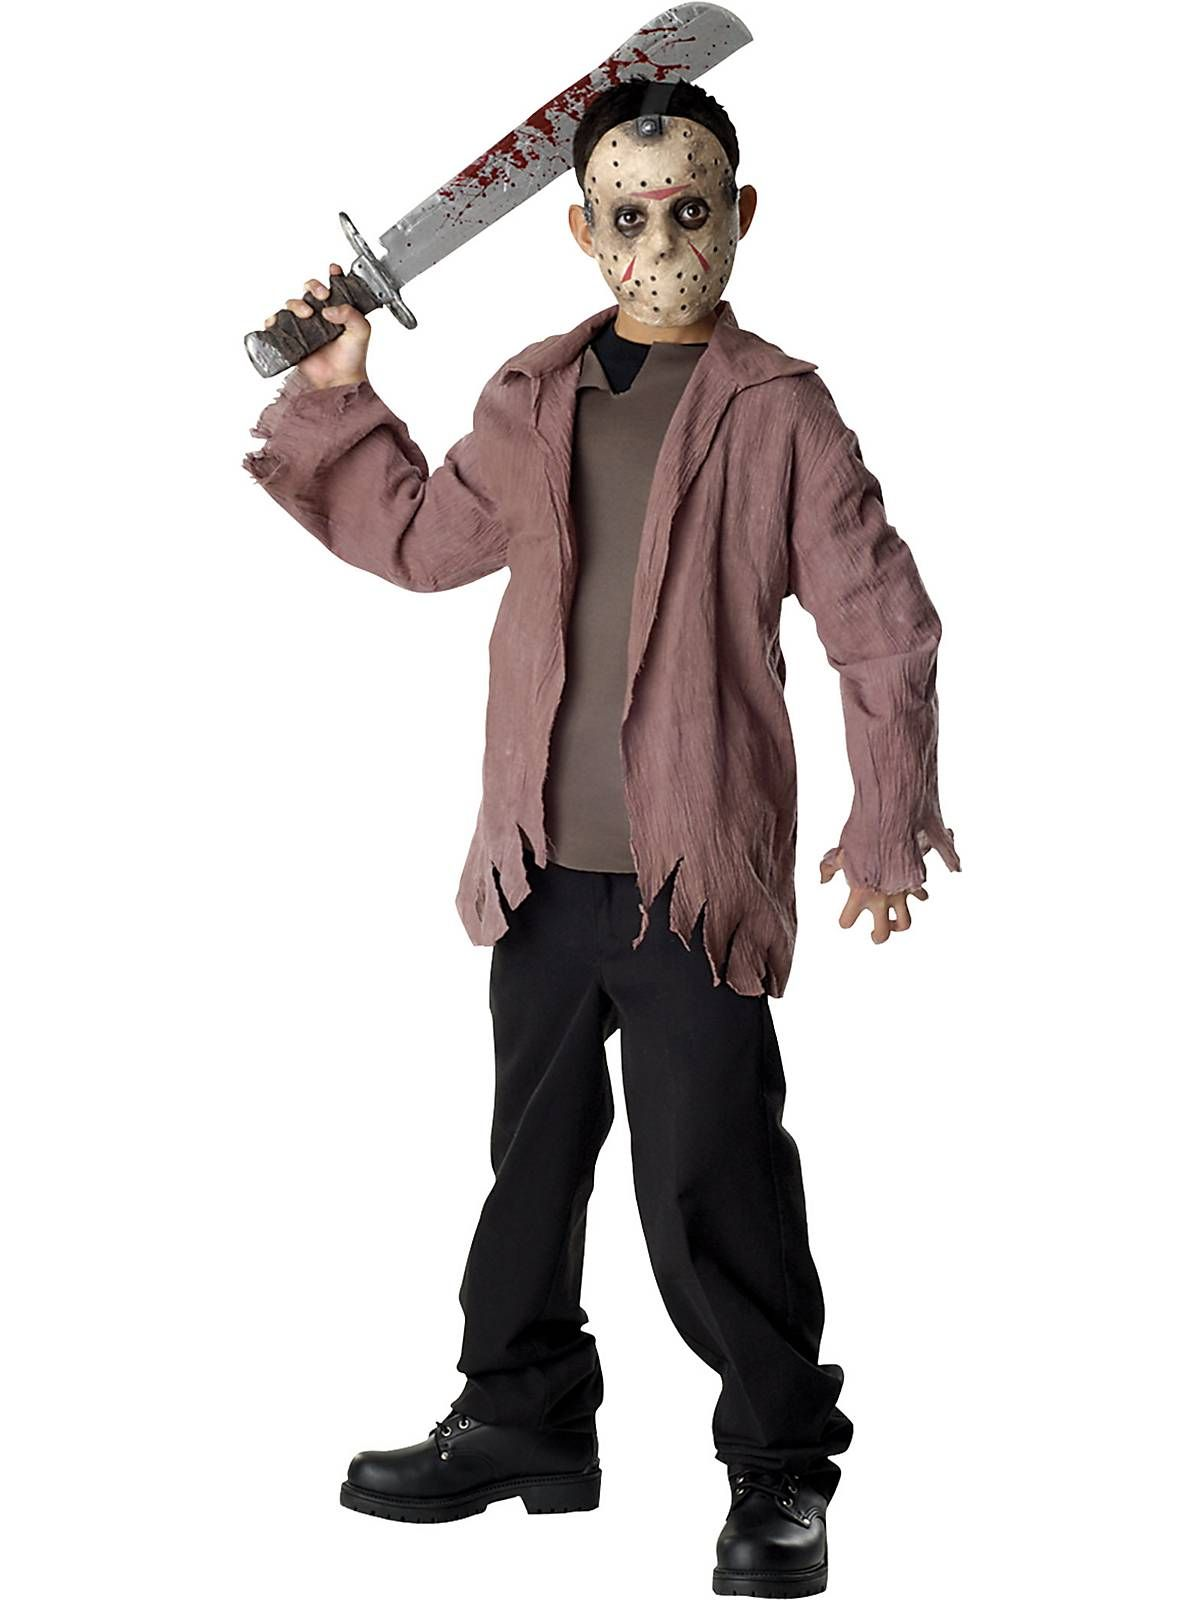 Halloween Costume Jason Friday 13th.Friday The 13th Jason Voorhees Teen Costume Wholesale Tv Movie